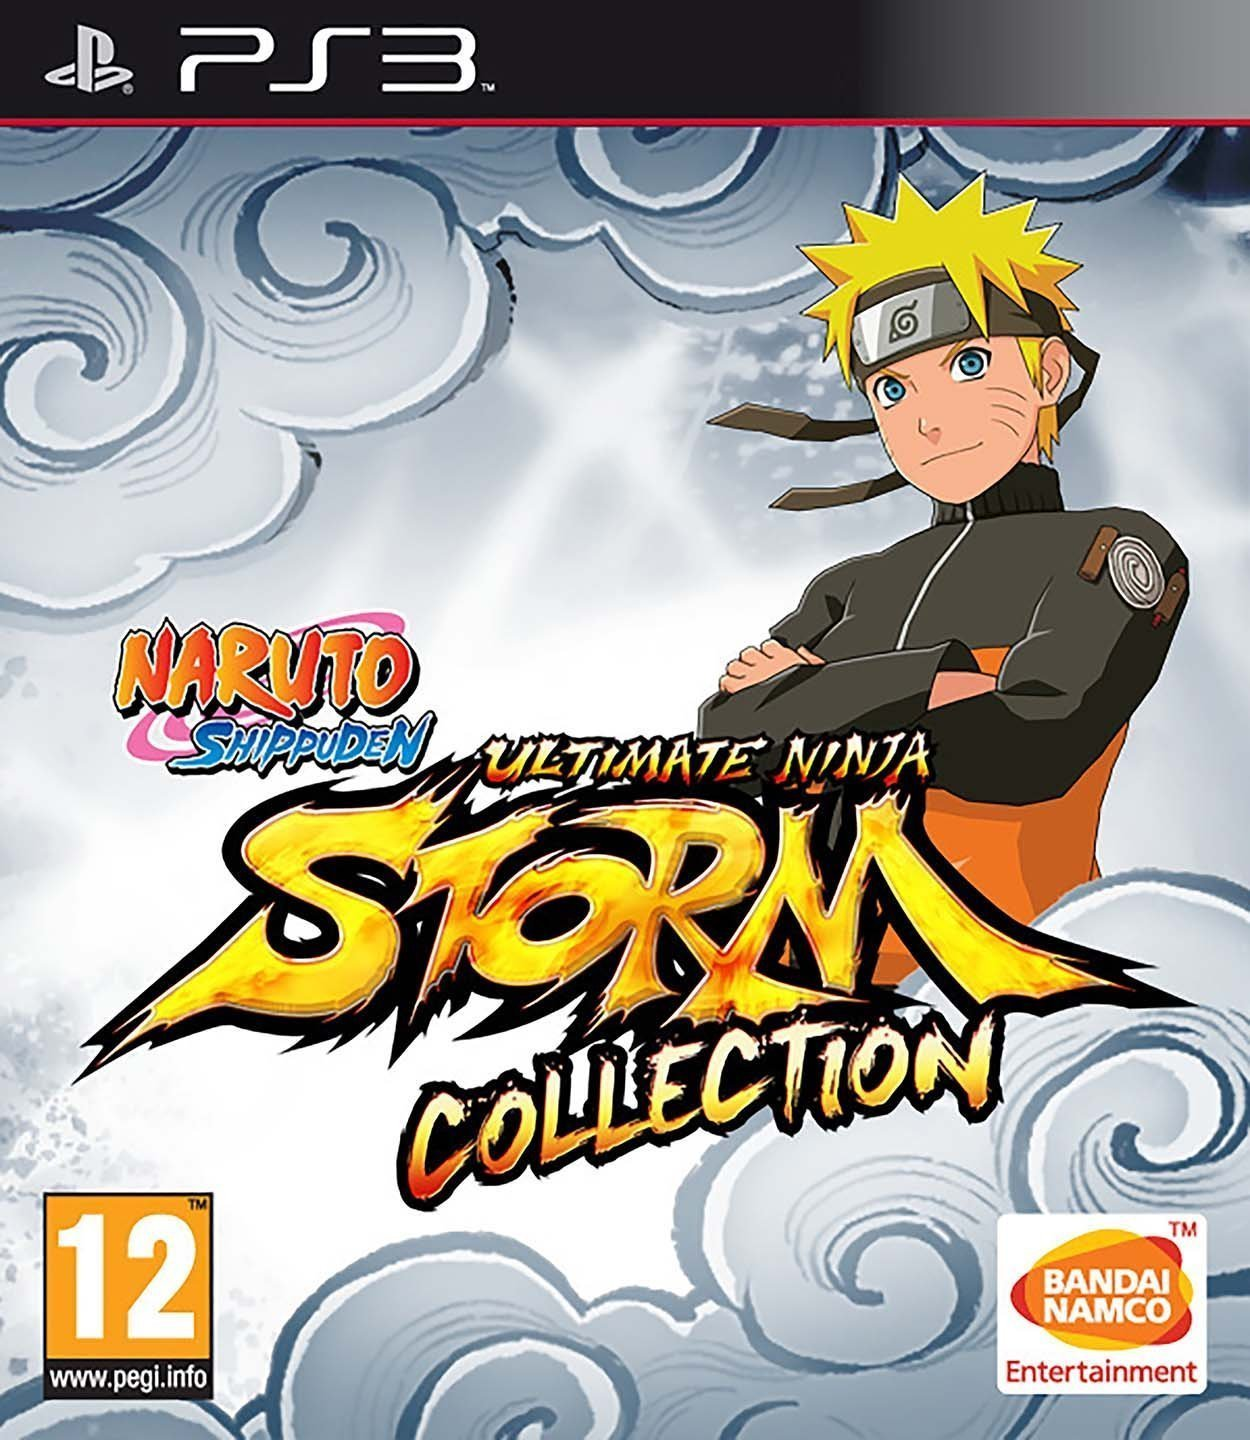 Naruto Shippuden Ultimate Ninja Storm Collection (1 + 2 + 3 Full Burst) for PS3 image